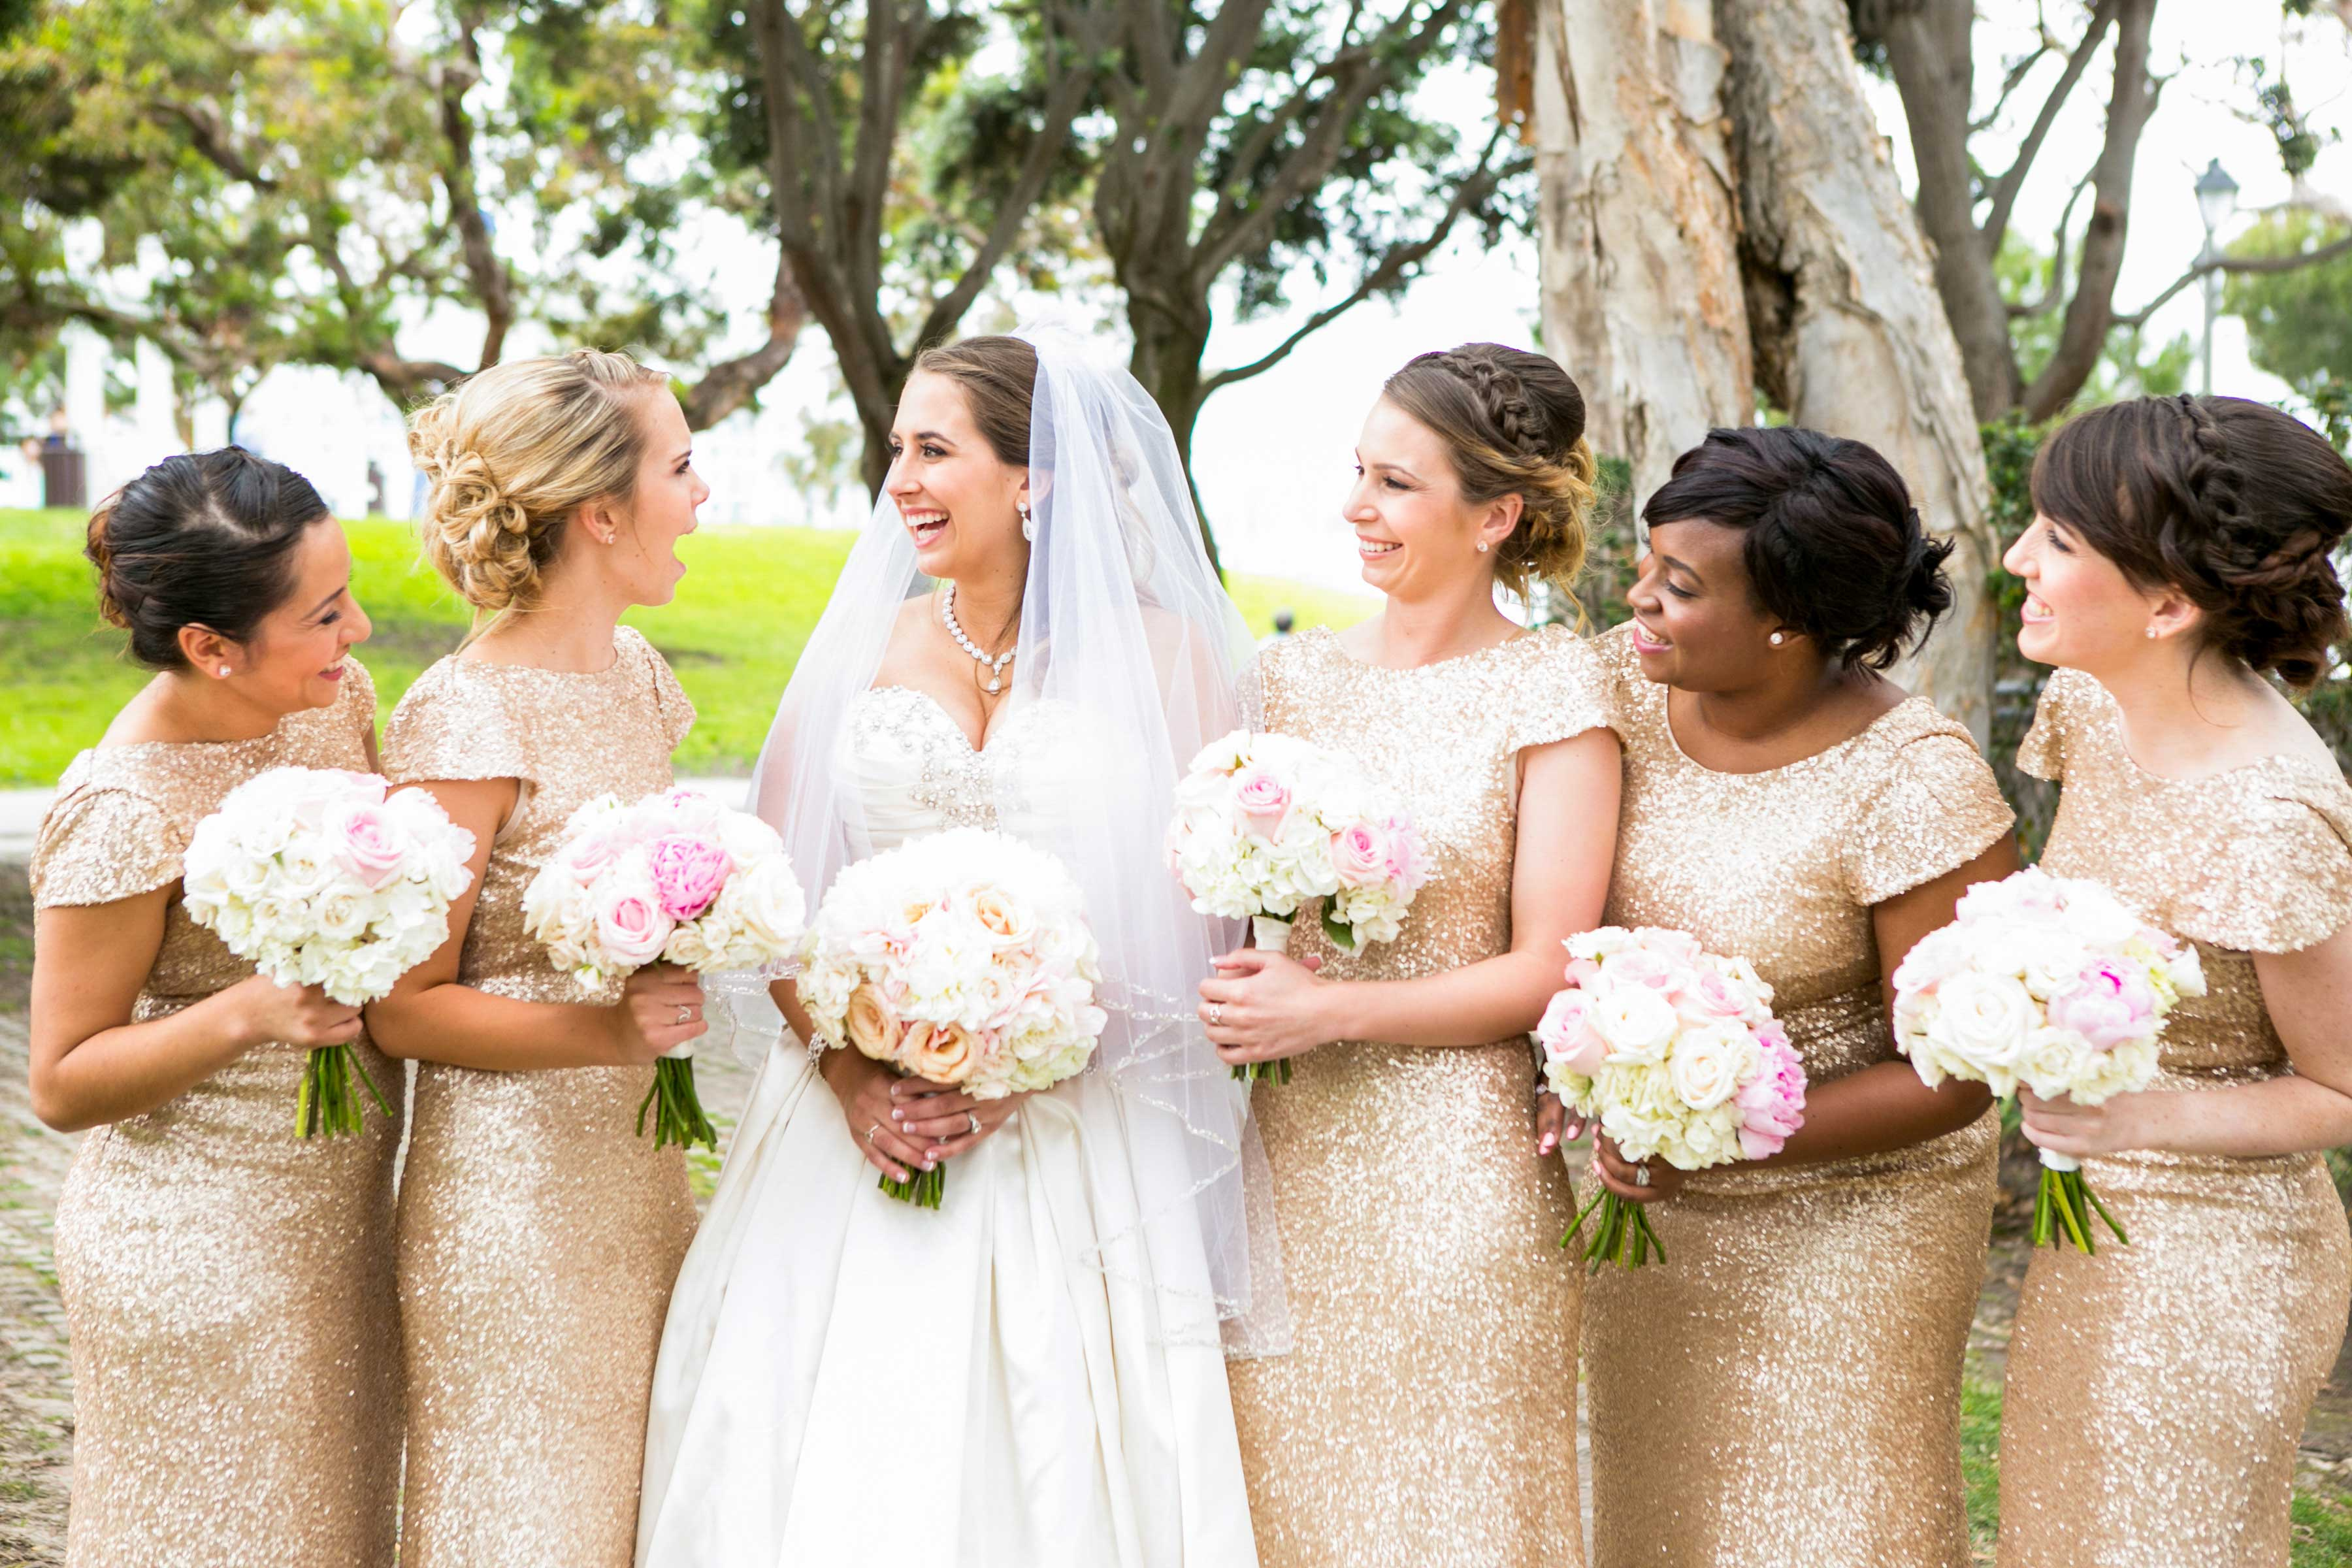 7 metallic gold bridesmaid gown concepts for your wedding inside below youll find gold bridesmaid gown combinations from seven of our featured real weddings to give you ideas be sure to click on each one for further ombrellifo Image collections